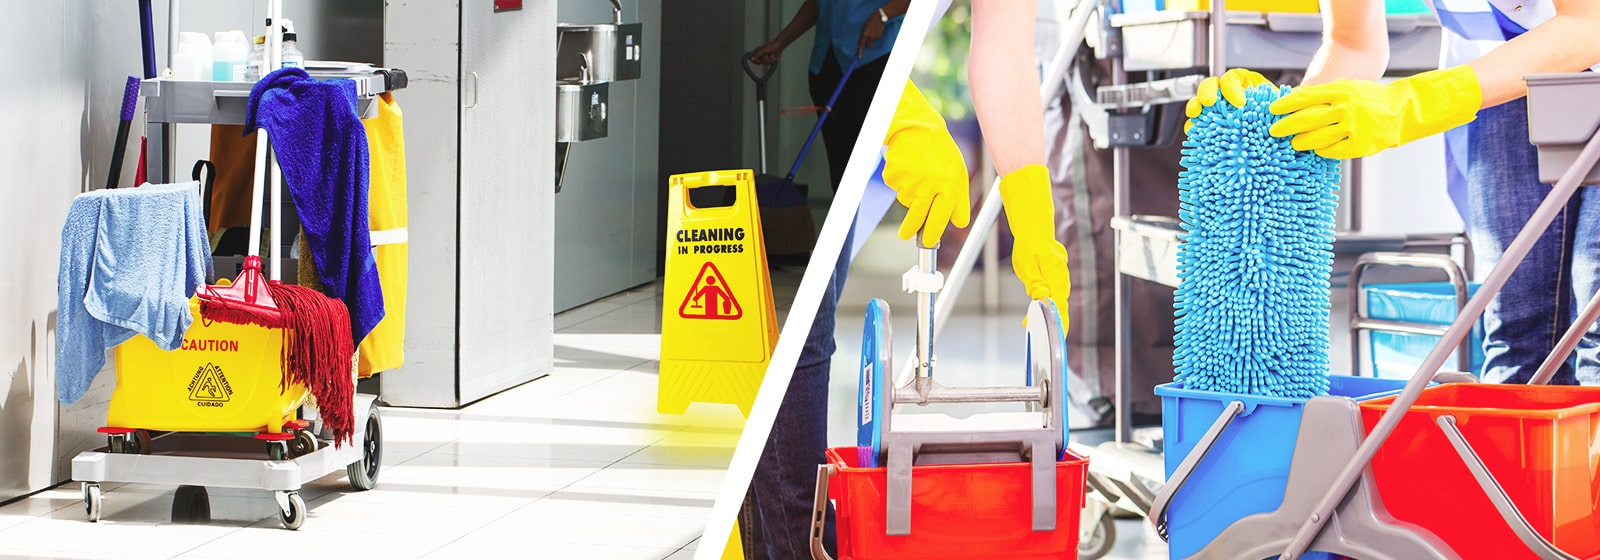 commercial cleaning service business for sale in lower mainland, bc